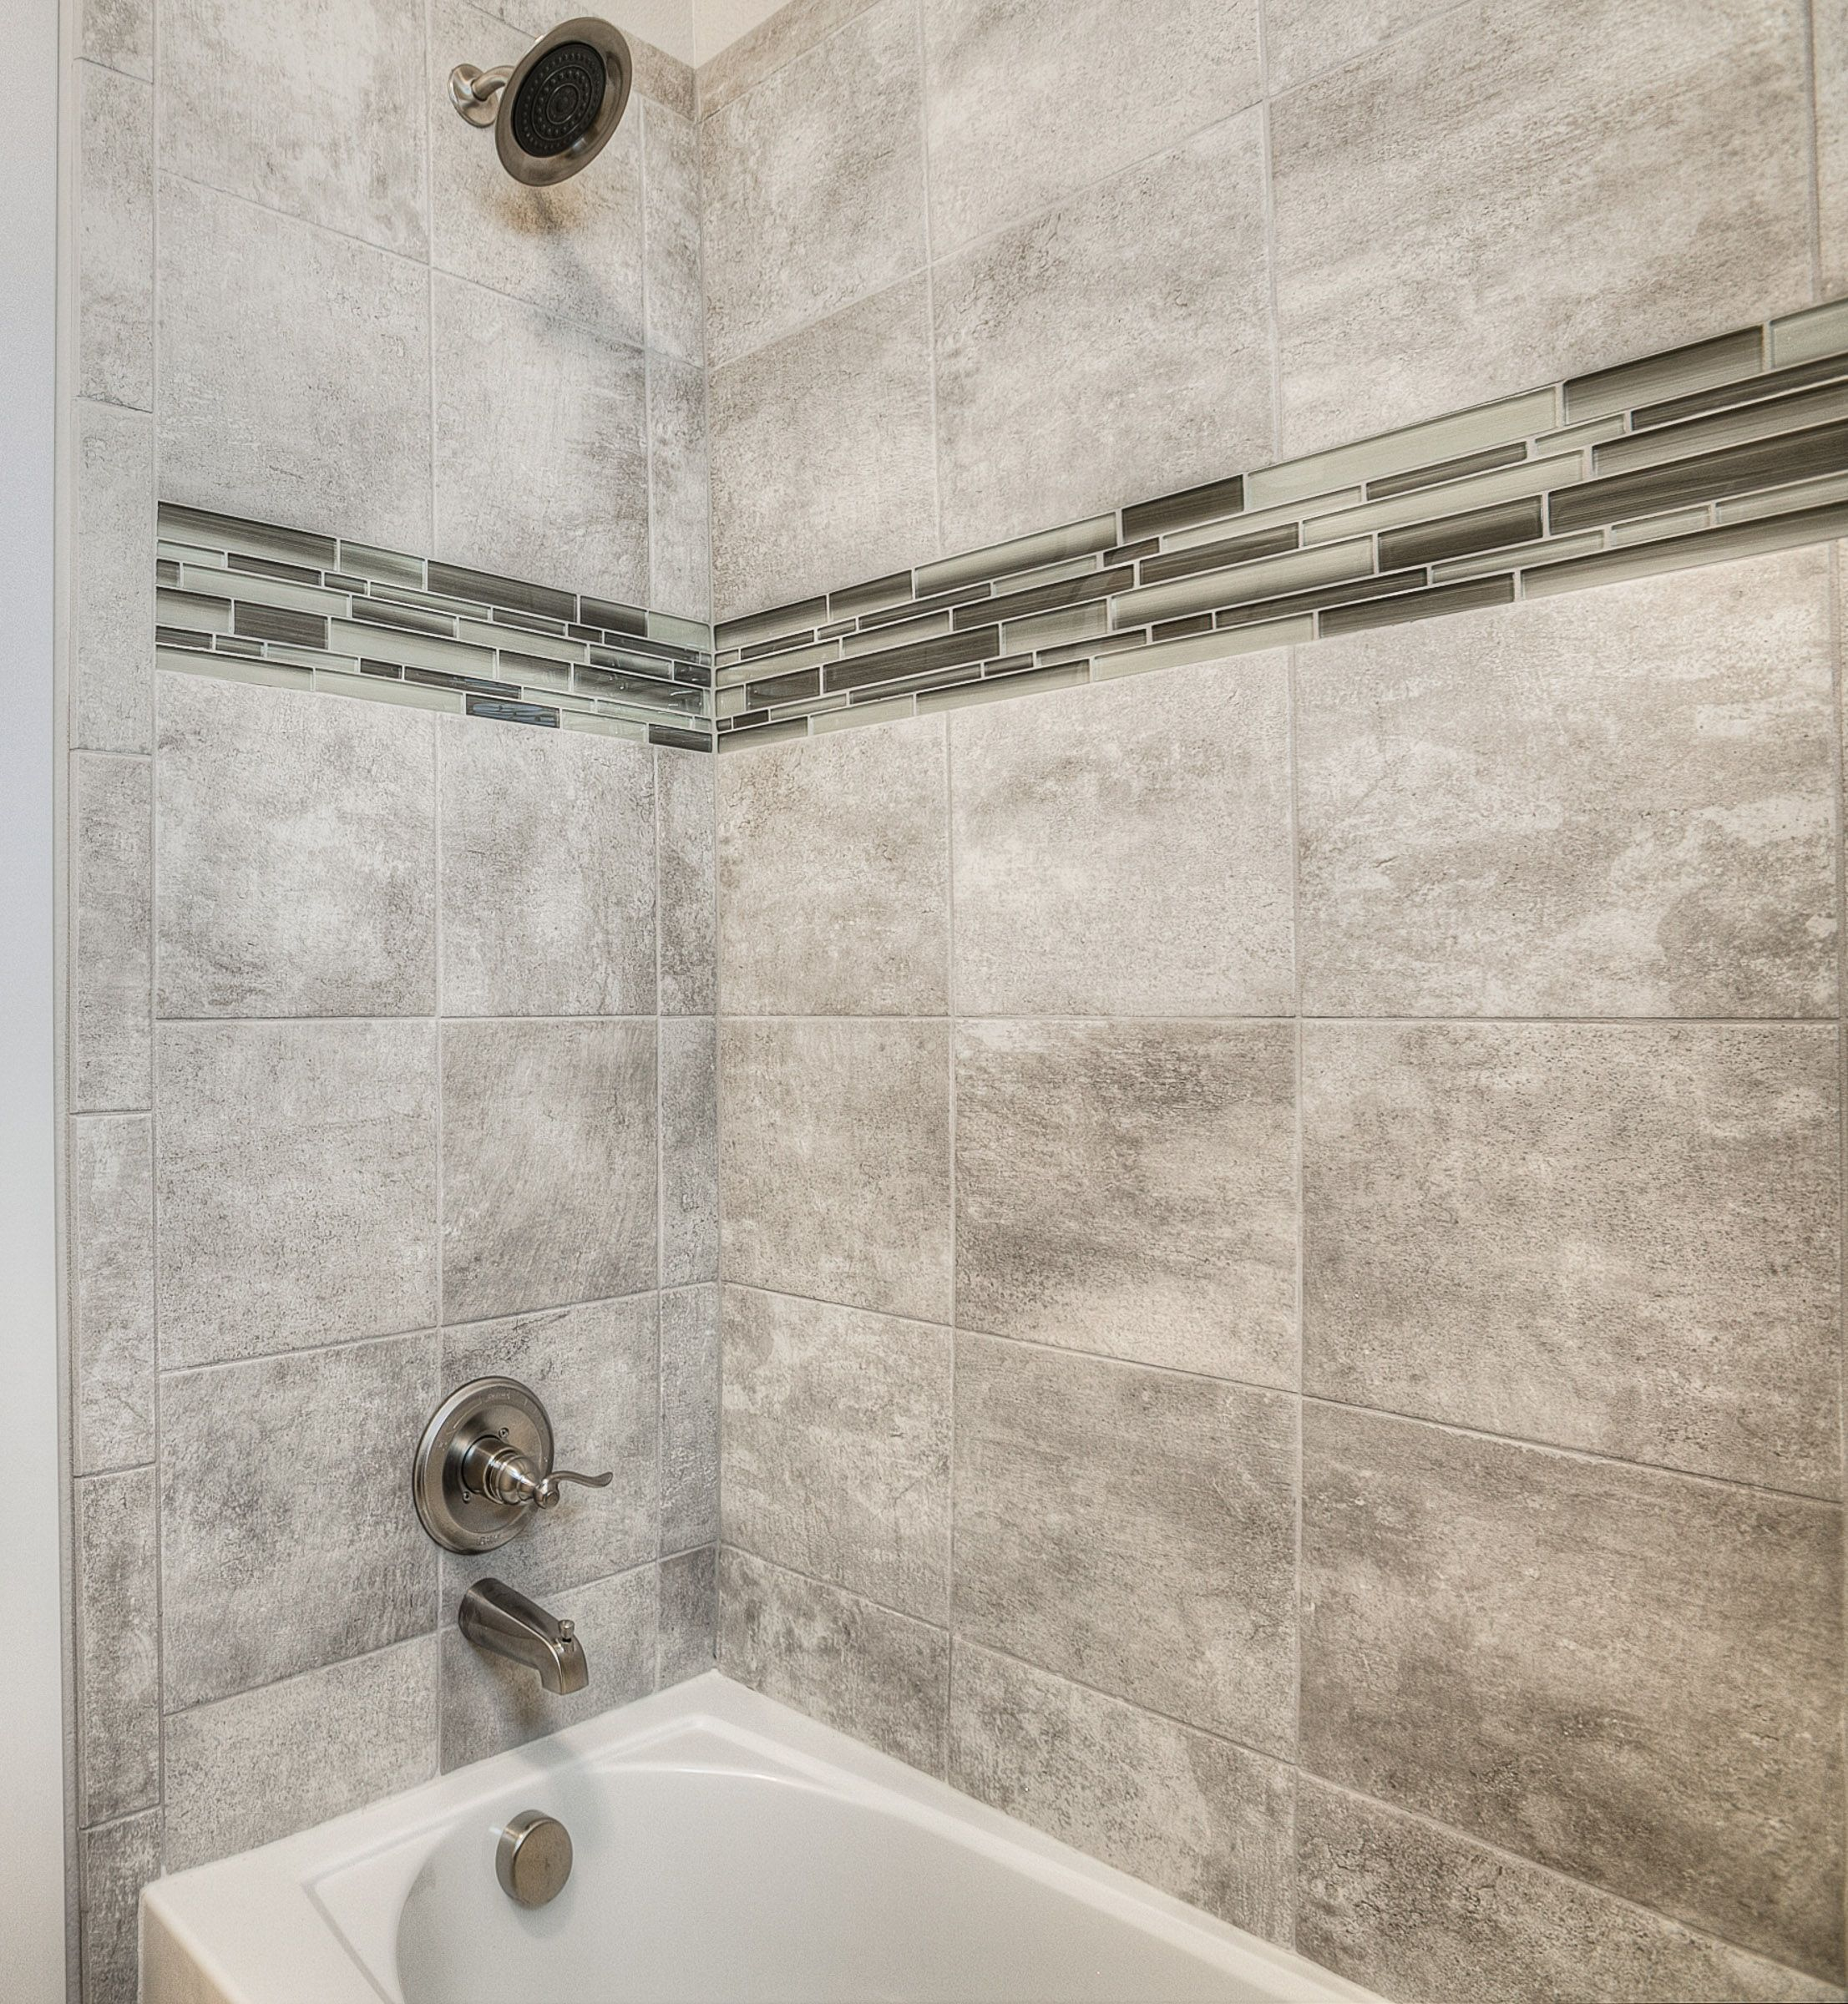 Bathrooms Continent Delta Haze Surround Tile And Fusion